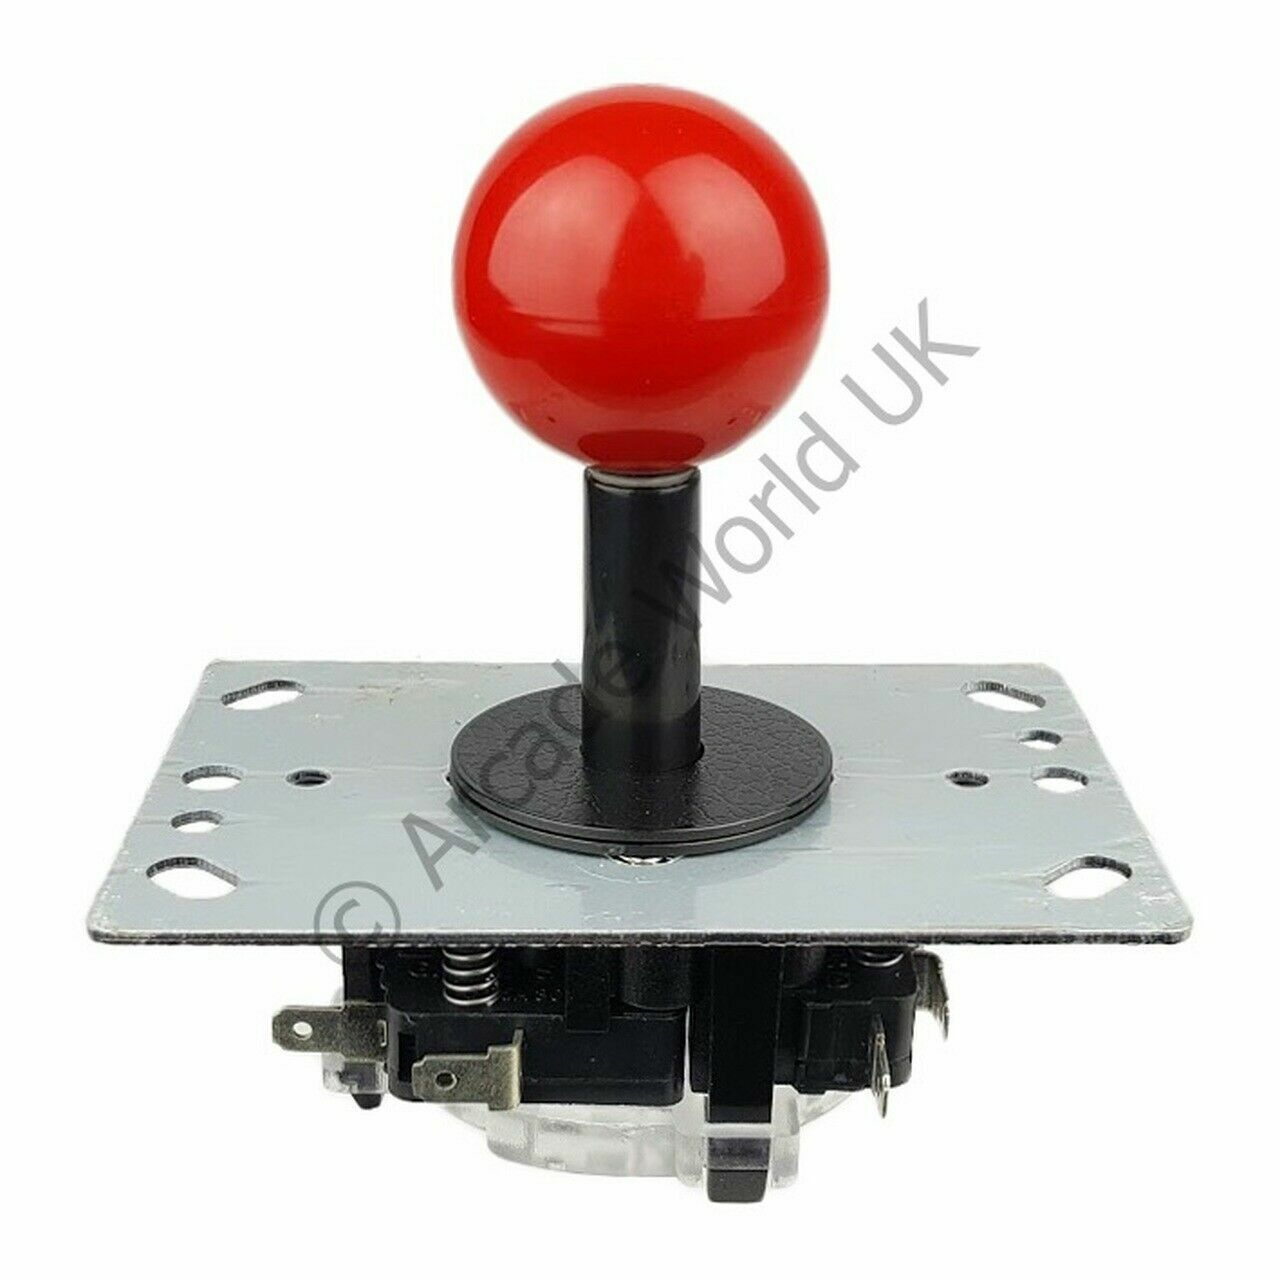 AWUK Balltop Joystick with Black Shaft Cover - 4.8mm Microswitches - 4/8 Way